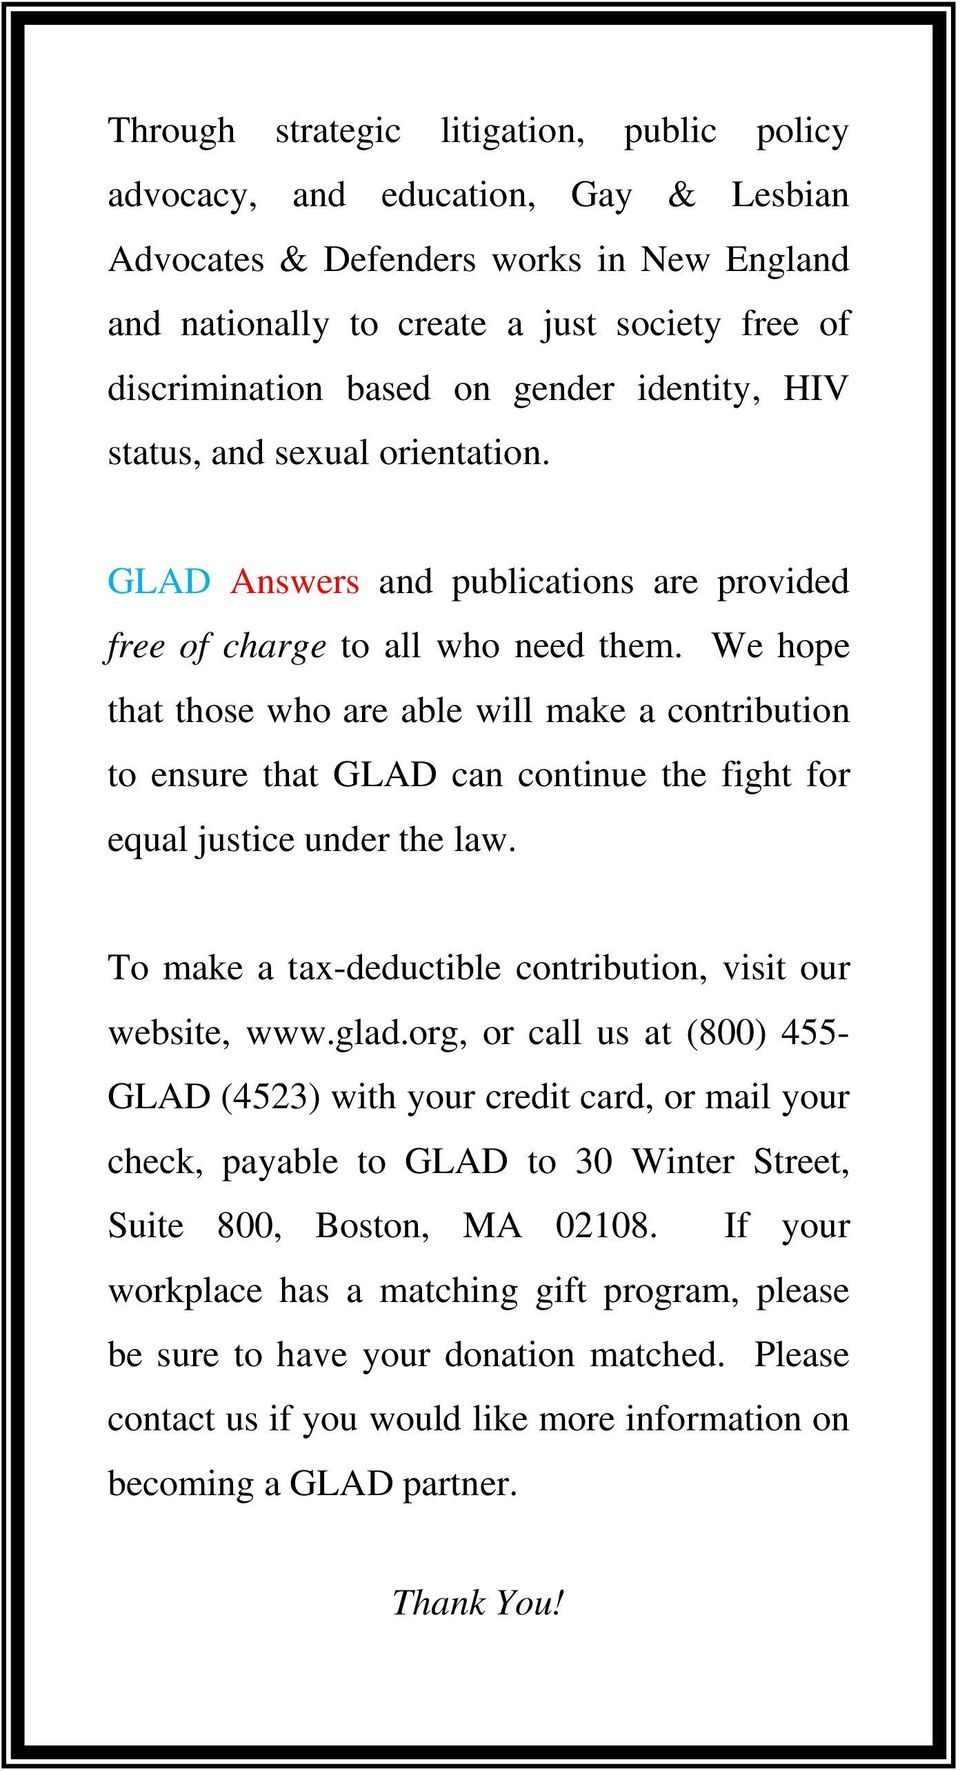 We hope that those who are able will make a contribution to ensure that GLAD can continue the fight for equal justice under the law. To make a tax-deductible contribution, visit our website, www.glad.